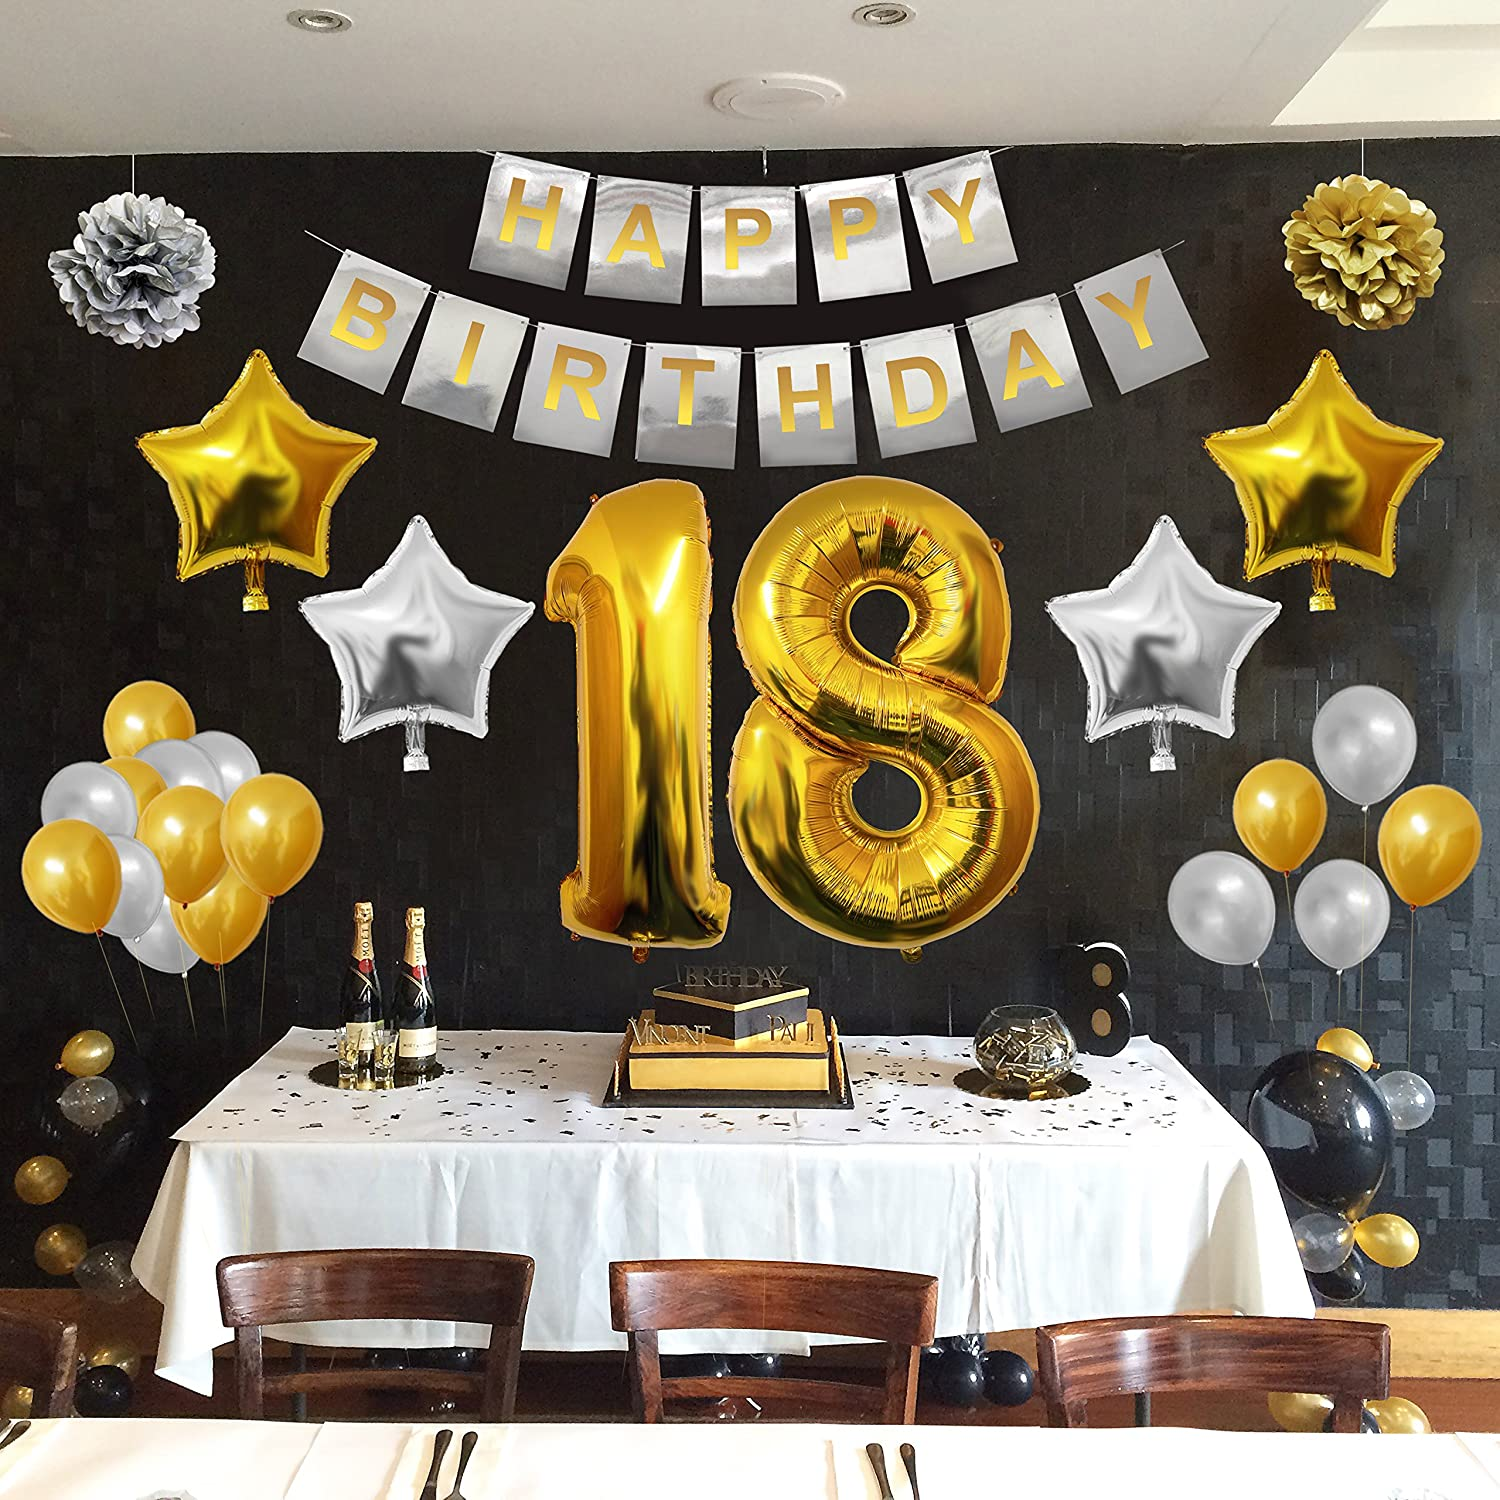 Complete 18th Happy Birthday Party Balloons Set, Supplies & Decorations by Belle Vous - Large 18 Years...